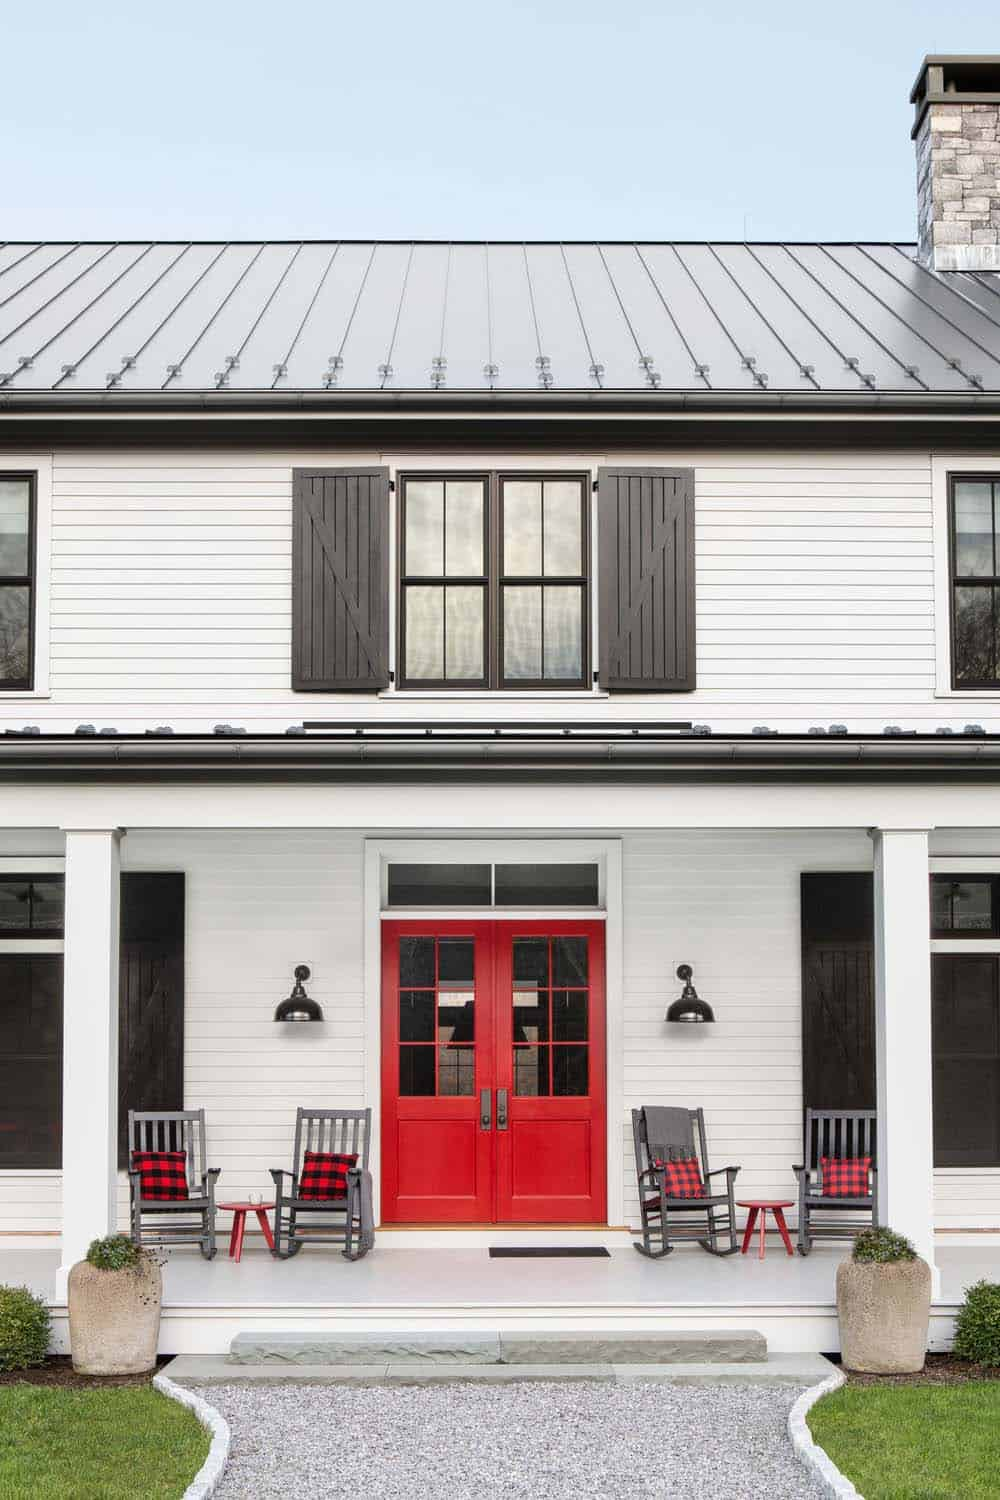 Wall Colour Inspiration: Eclectic Modern Farmhouse With Unexpected Pops Of Color In